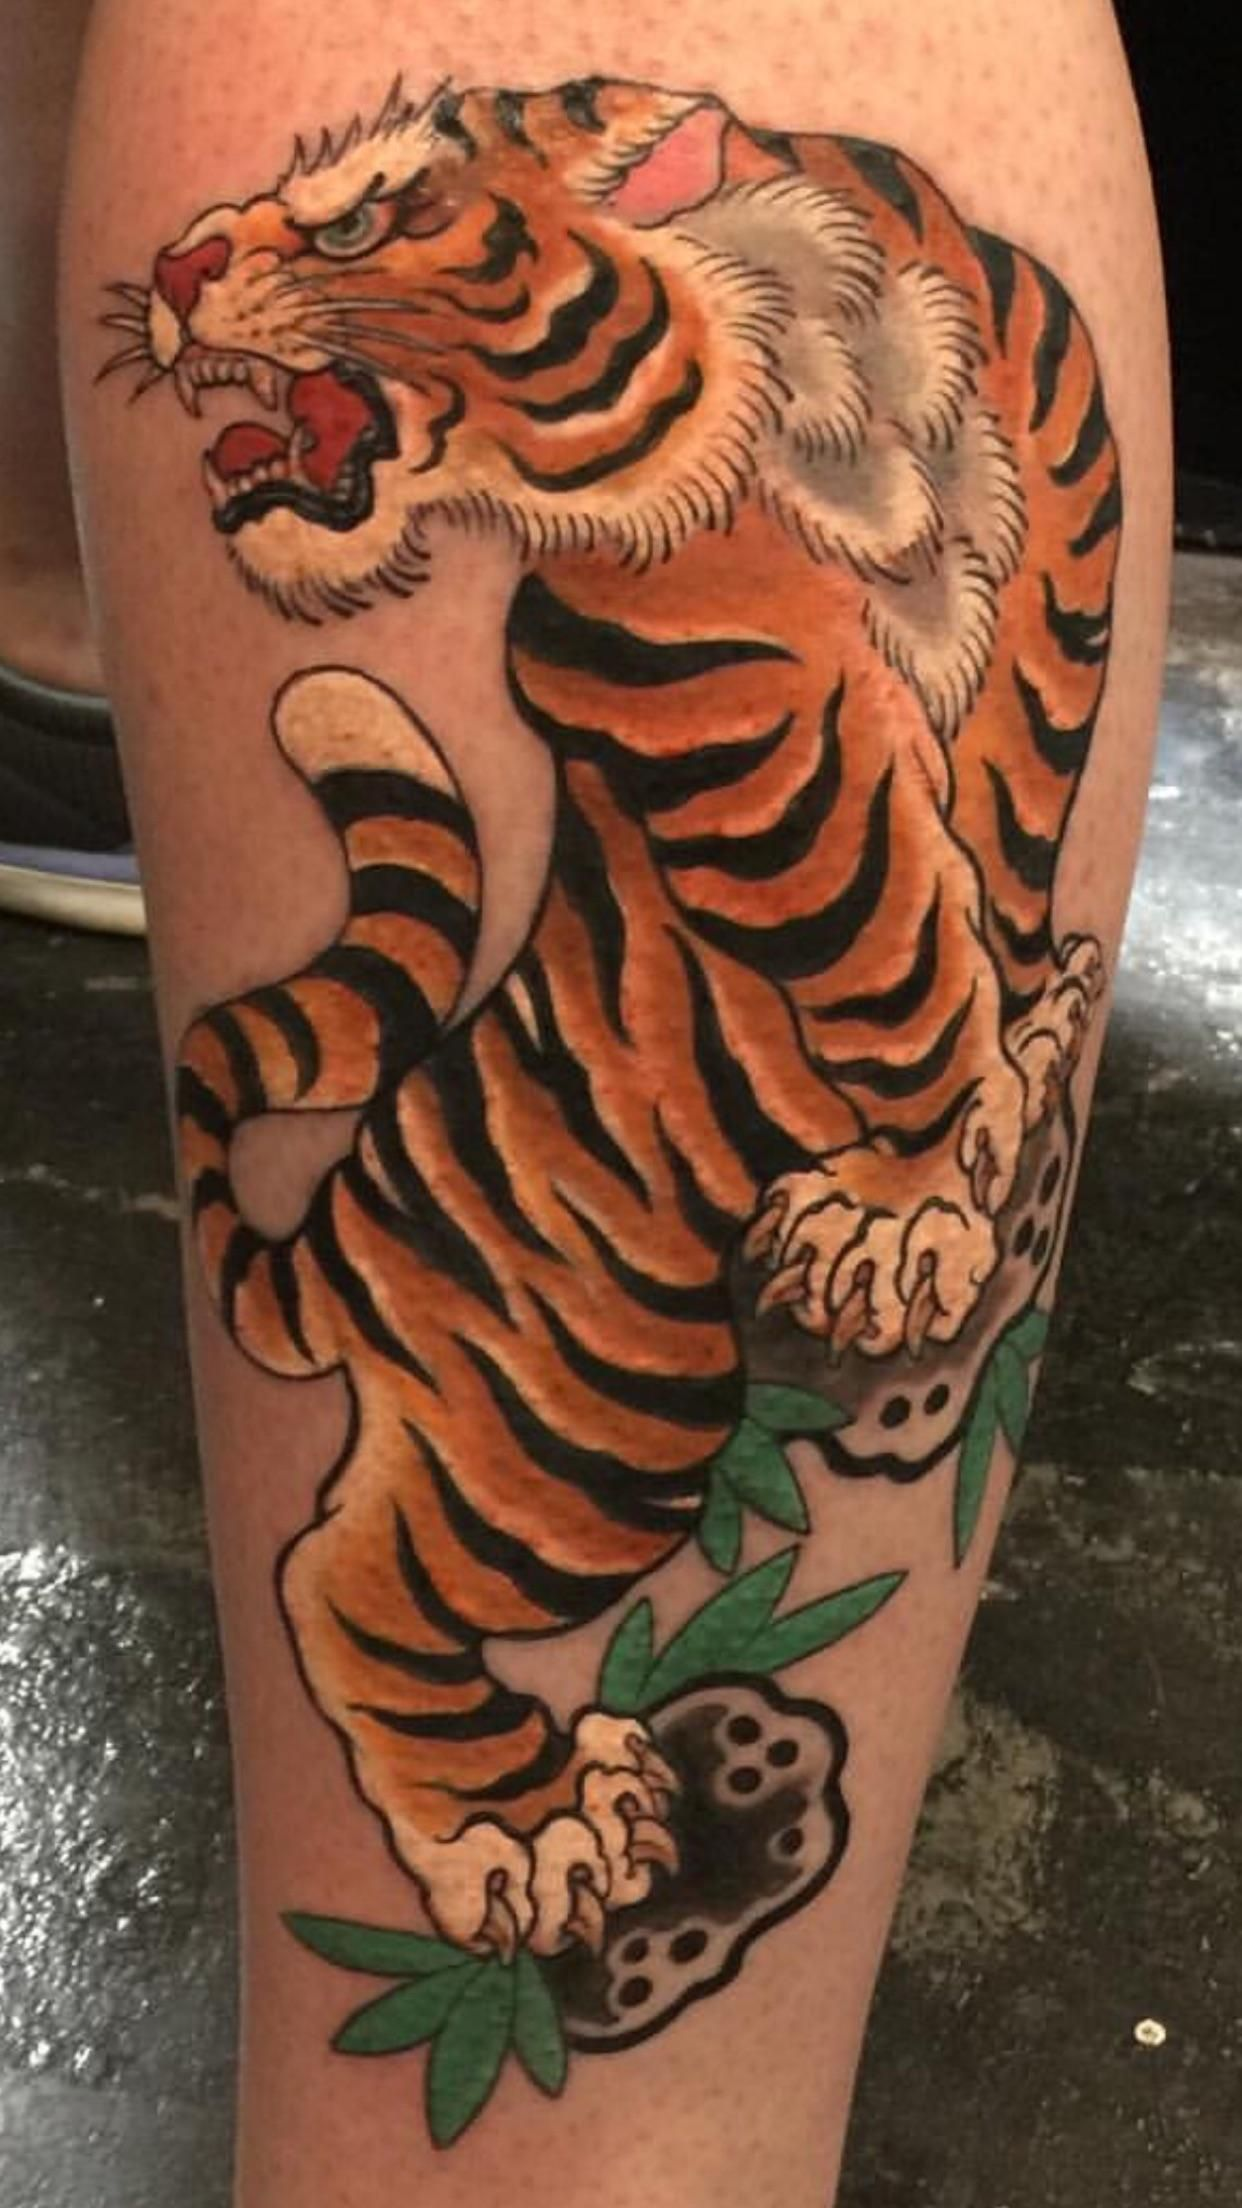 c4c59c06b Traditional Japanese Tiger by Ami James at Love Hate Social Club Manhattan  NY